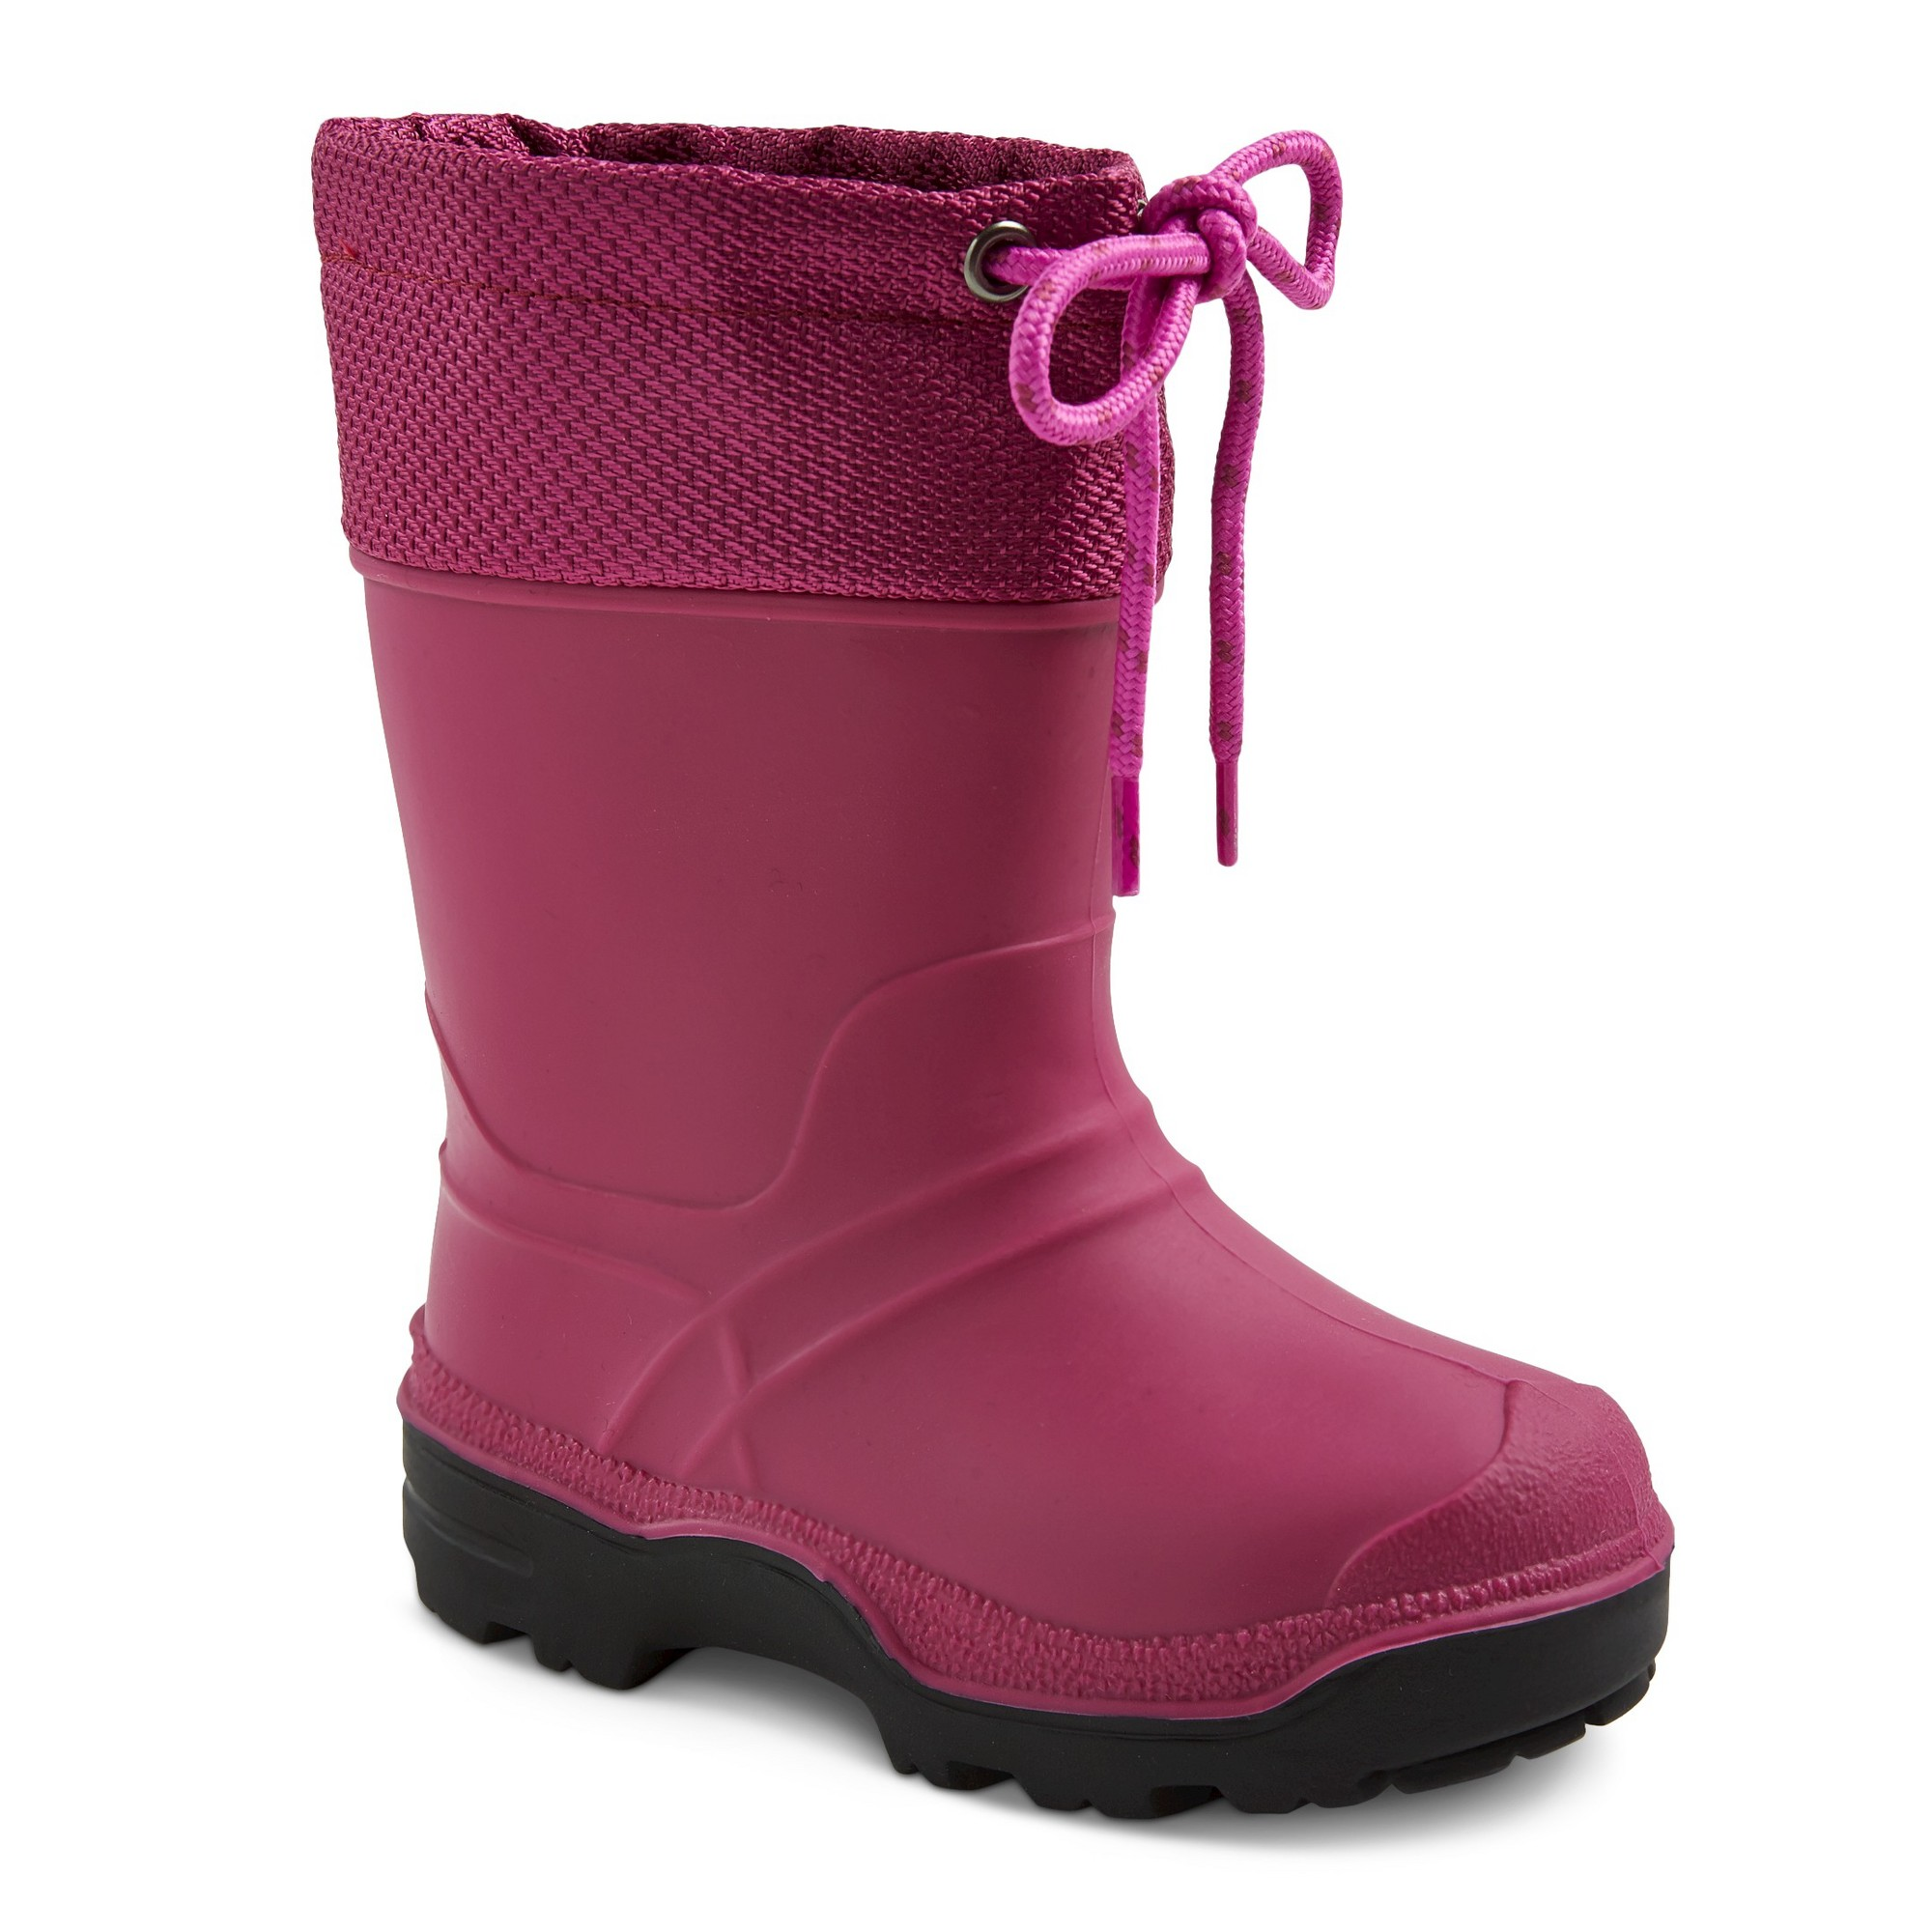 Boys and Girls 25 Degree Fahrenheit Waterproof Boots Snowmaster Icestorm Winter Boots